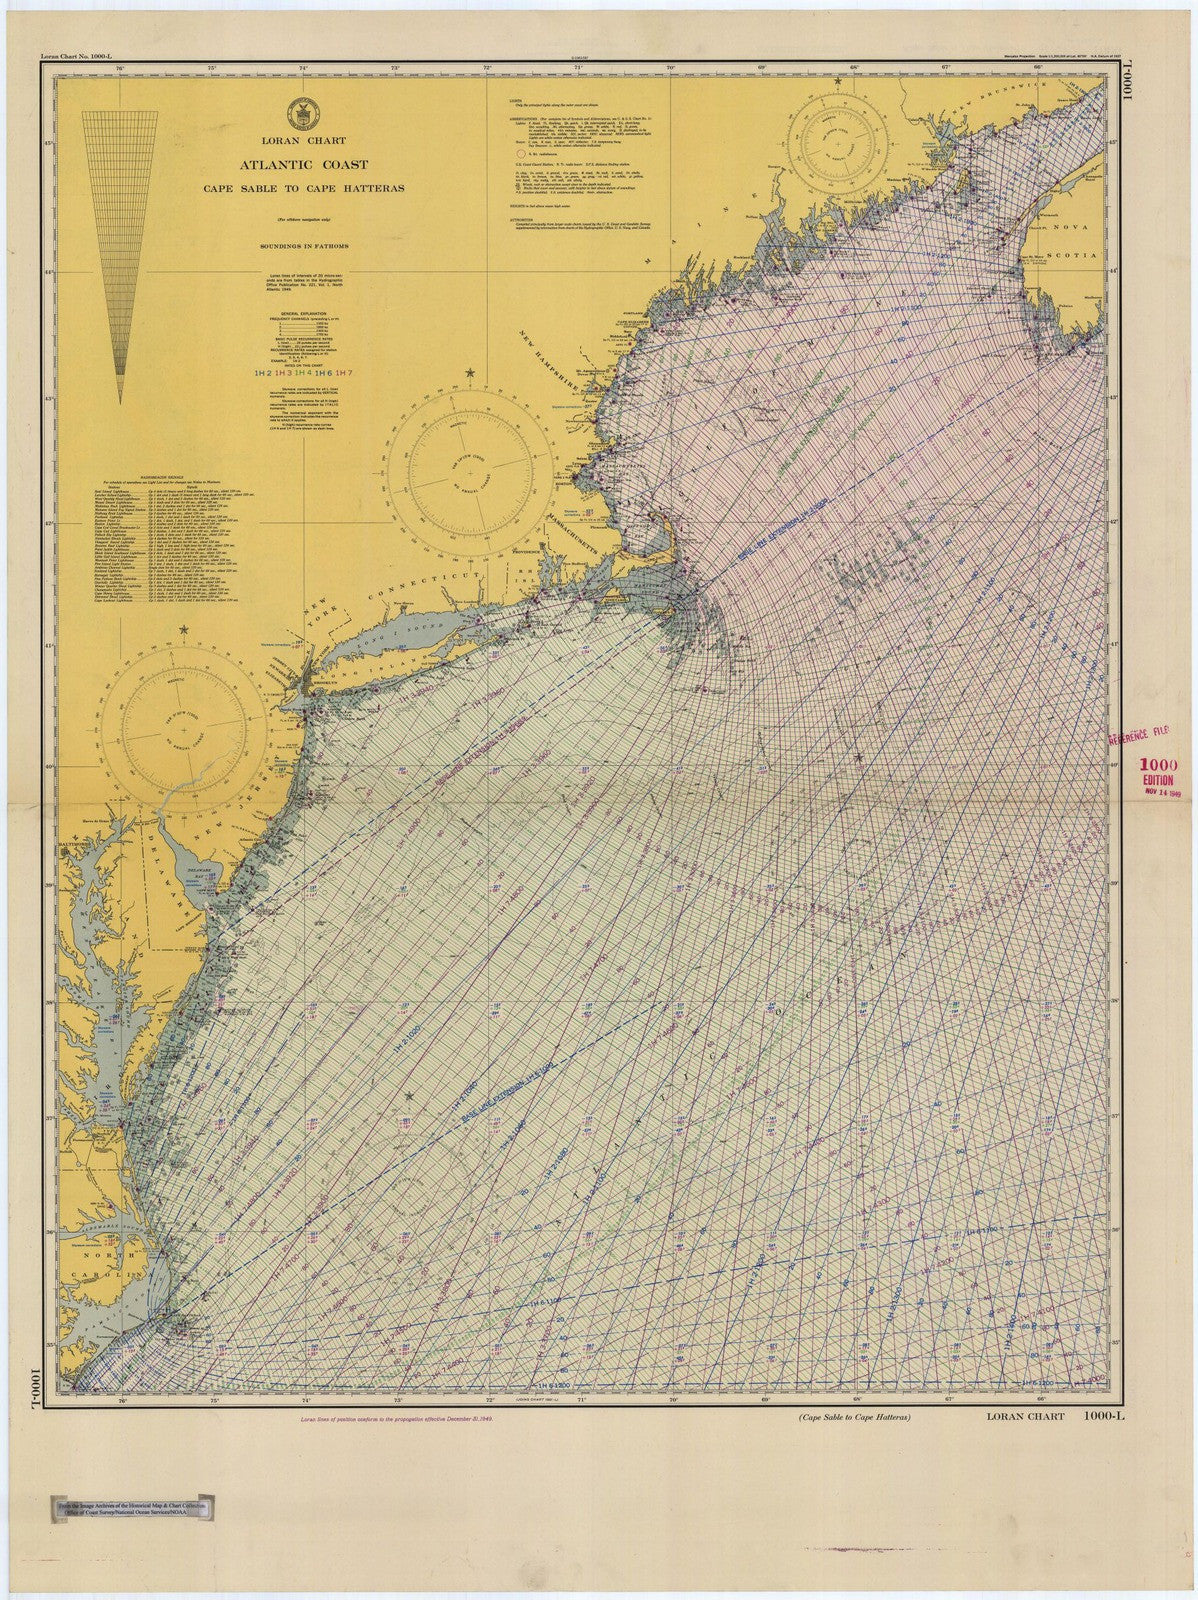 Print Of Cape Sable To Cape Hatteras Poster On Vintage Visualizations